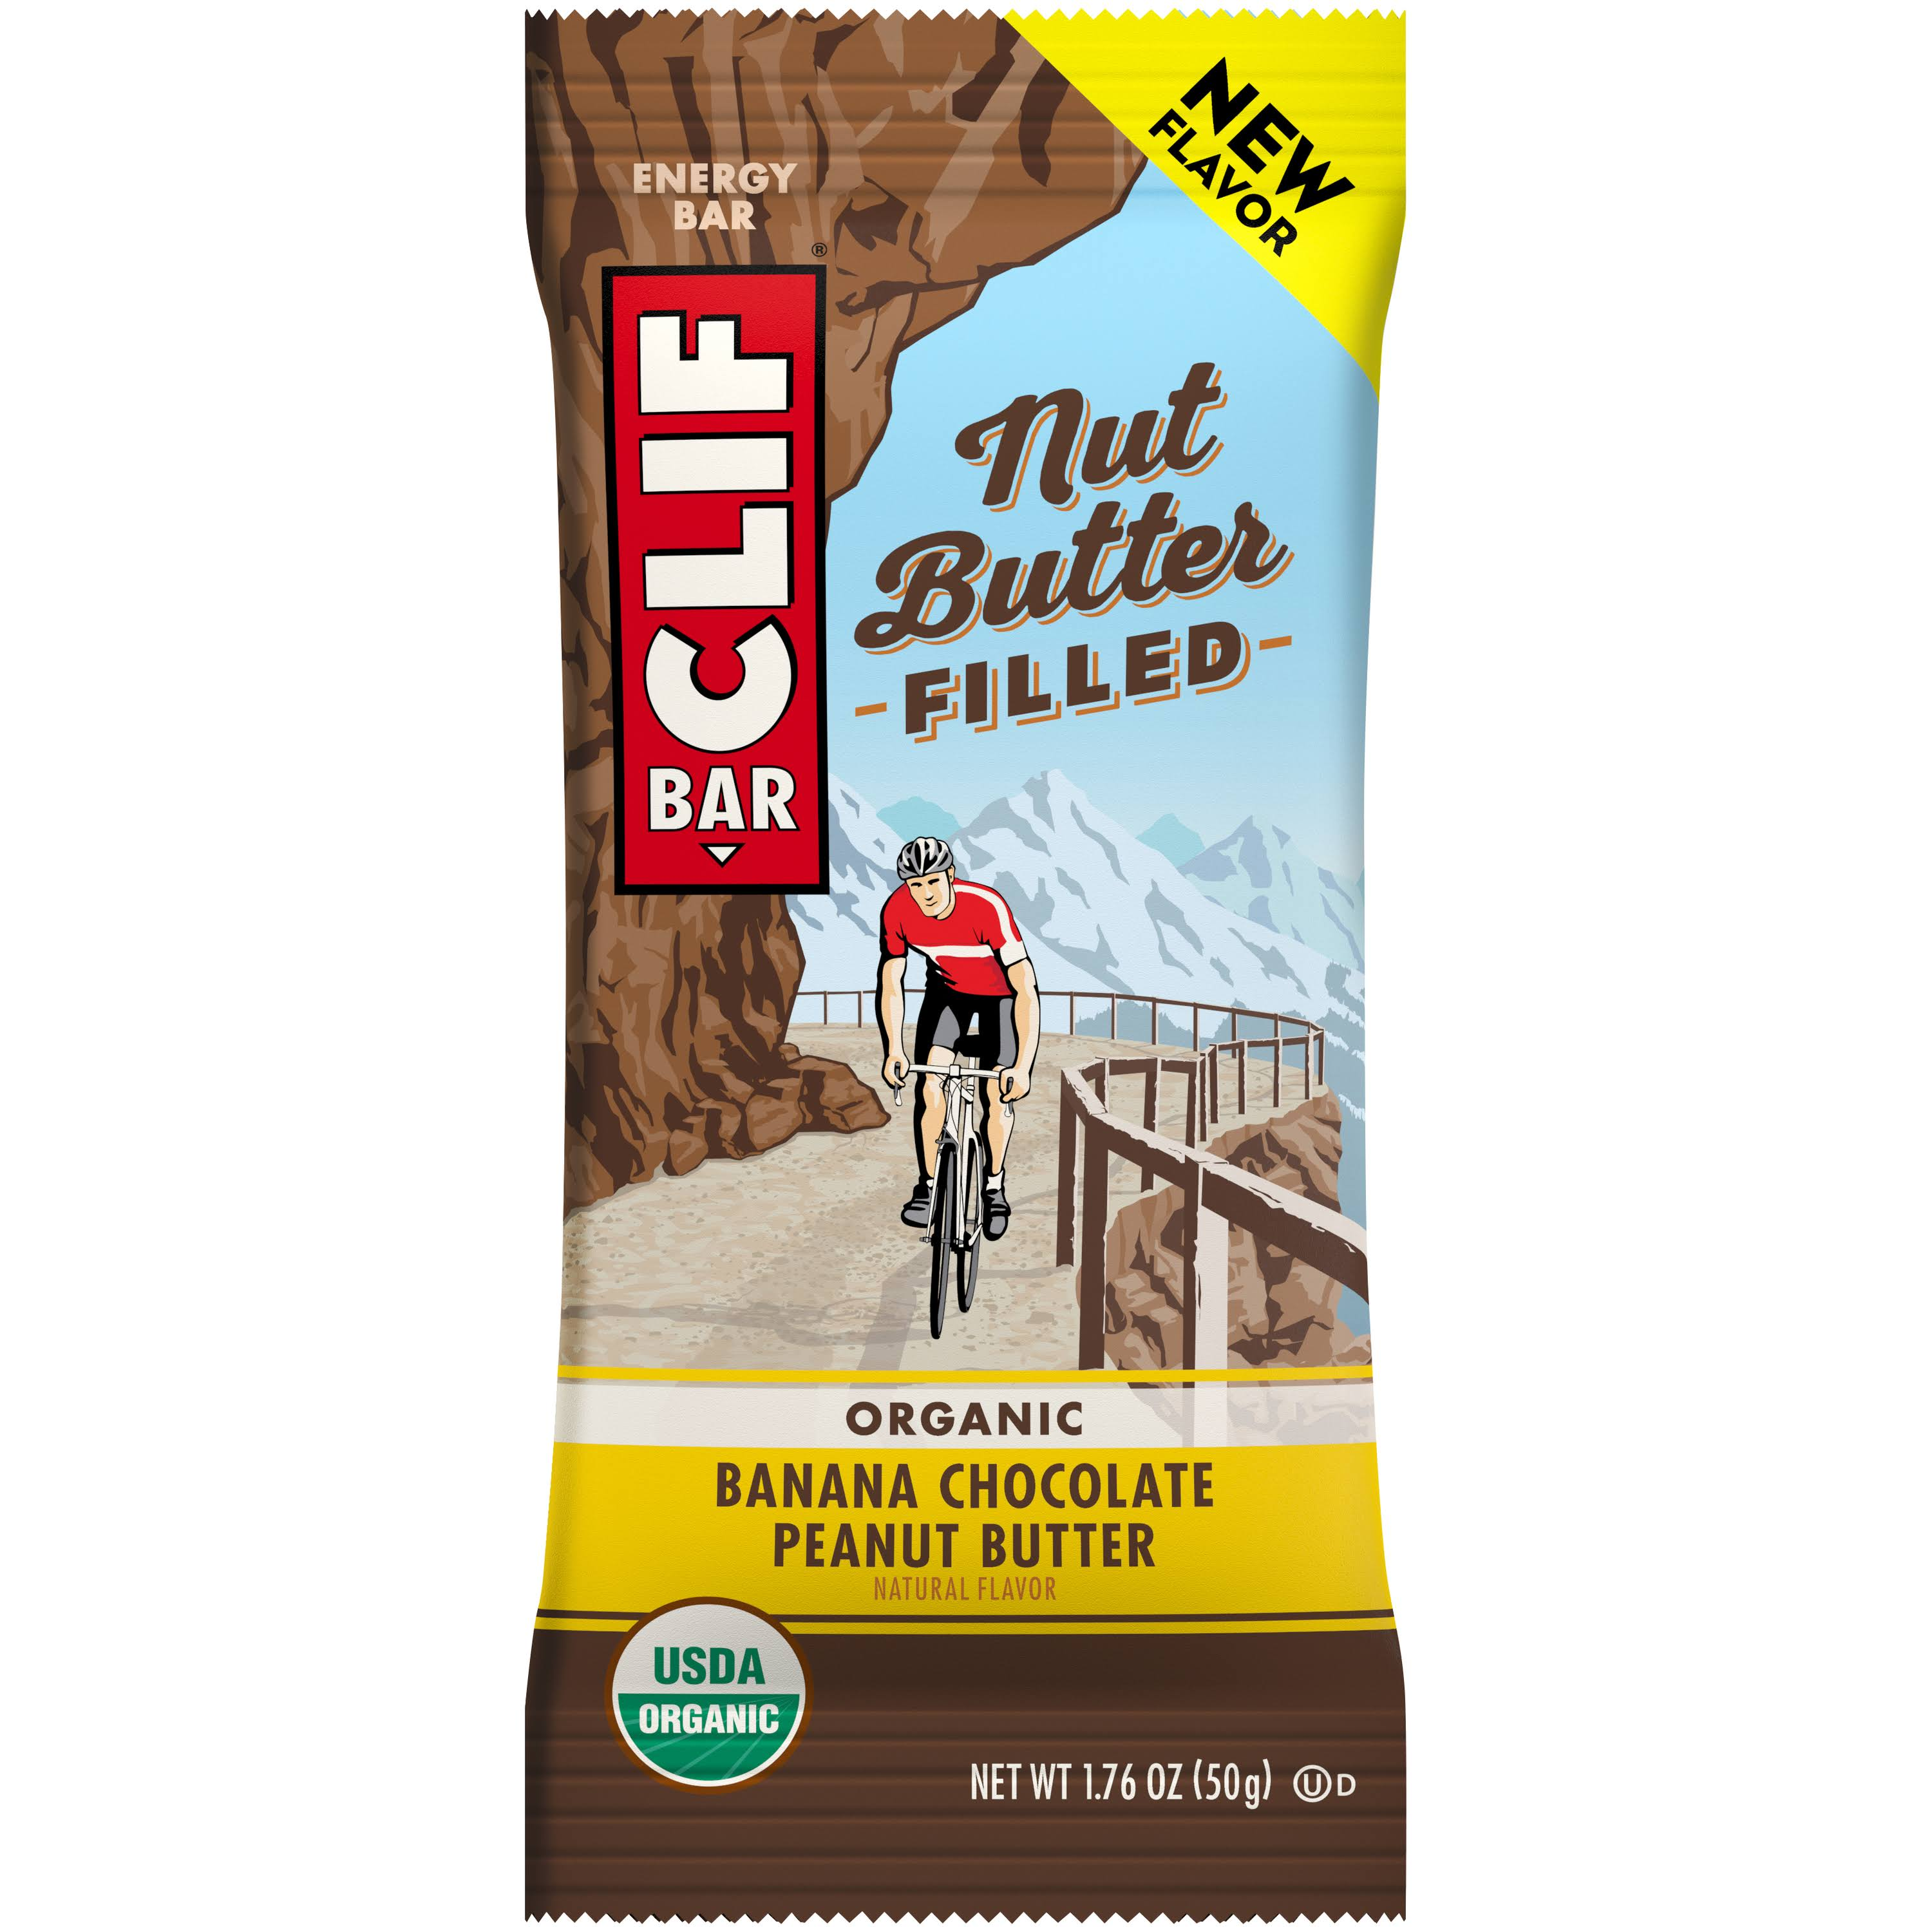 Clif Organic Banana Chocolate Peanut Butter Energy Bar - 1.76oz